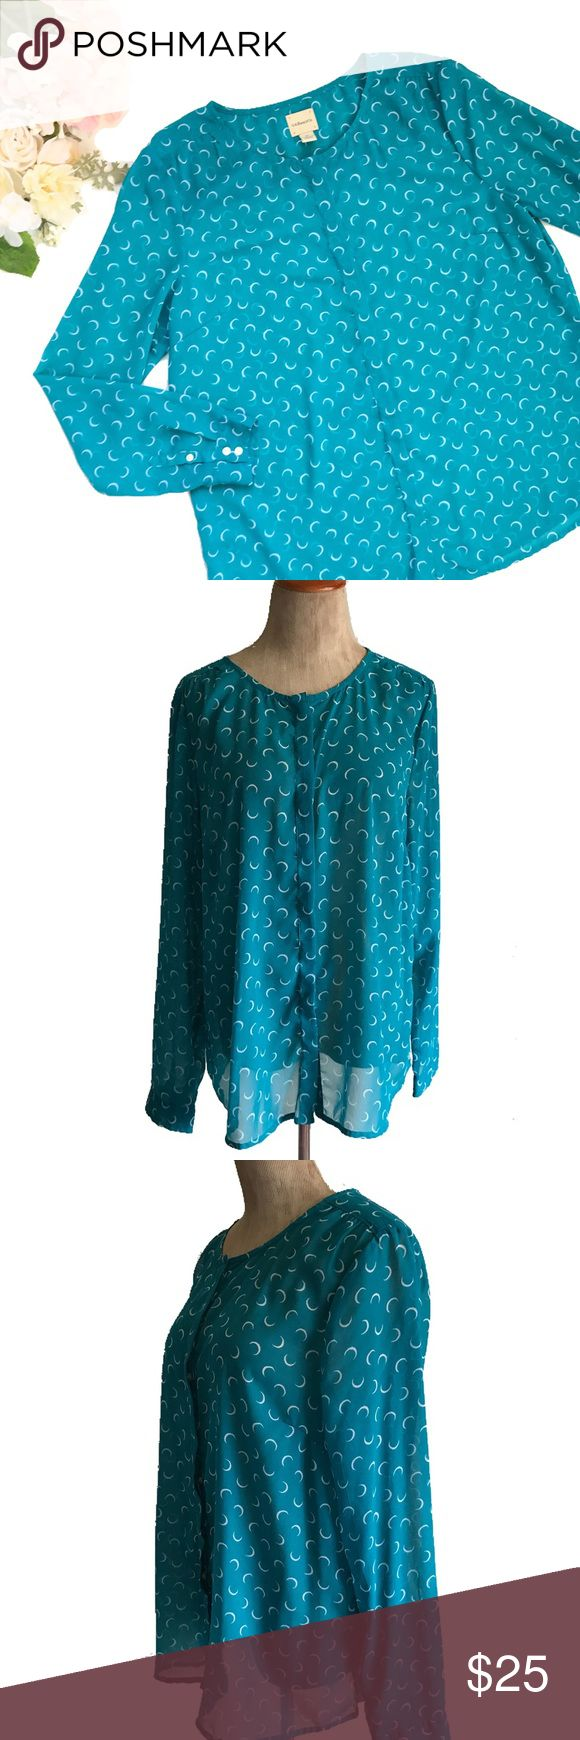 """G.H. Bass & Co Sheer Button Down Blouse Beautiful NWOT G. H. Bass & Co teal semi sheer blouse with white/off white crescents.  Scoop neck, hidden placket button front, button cuff, gathered shoulders, rounded hem. 100% polyester machine wash. Approx flat meas: length 28"""", bust 22"""", shoulders 17"""", waist 22"""", sleeve 25"""", hem 23"""" Tops Blouses"""